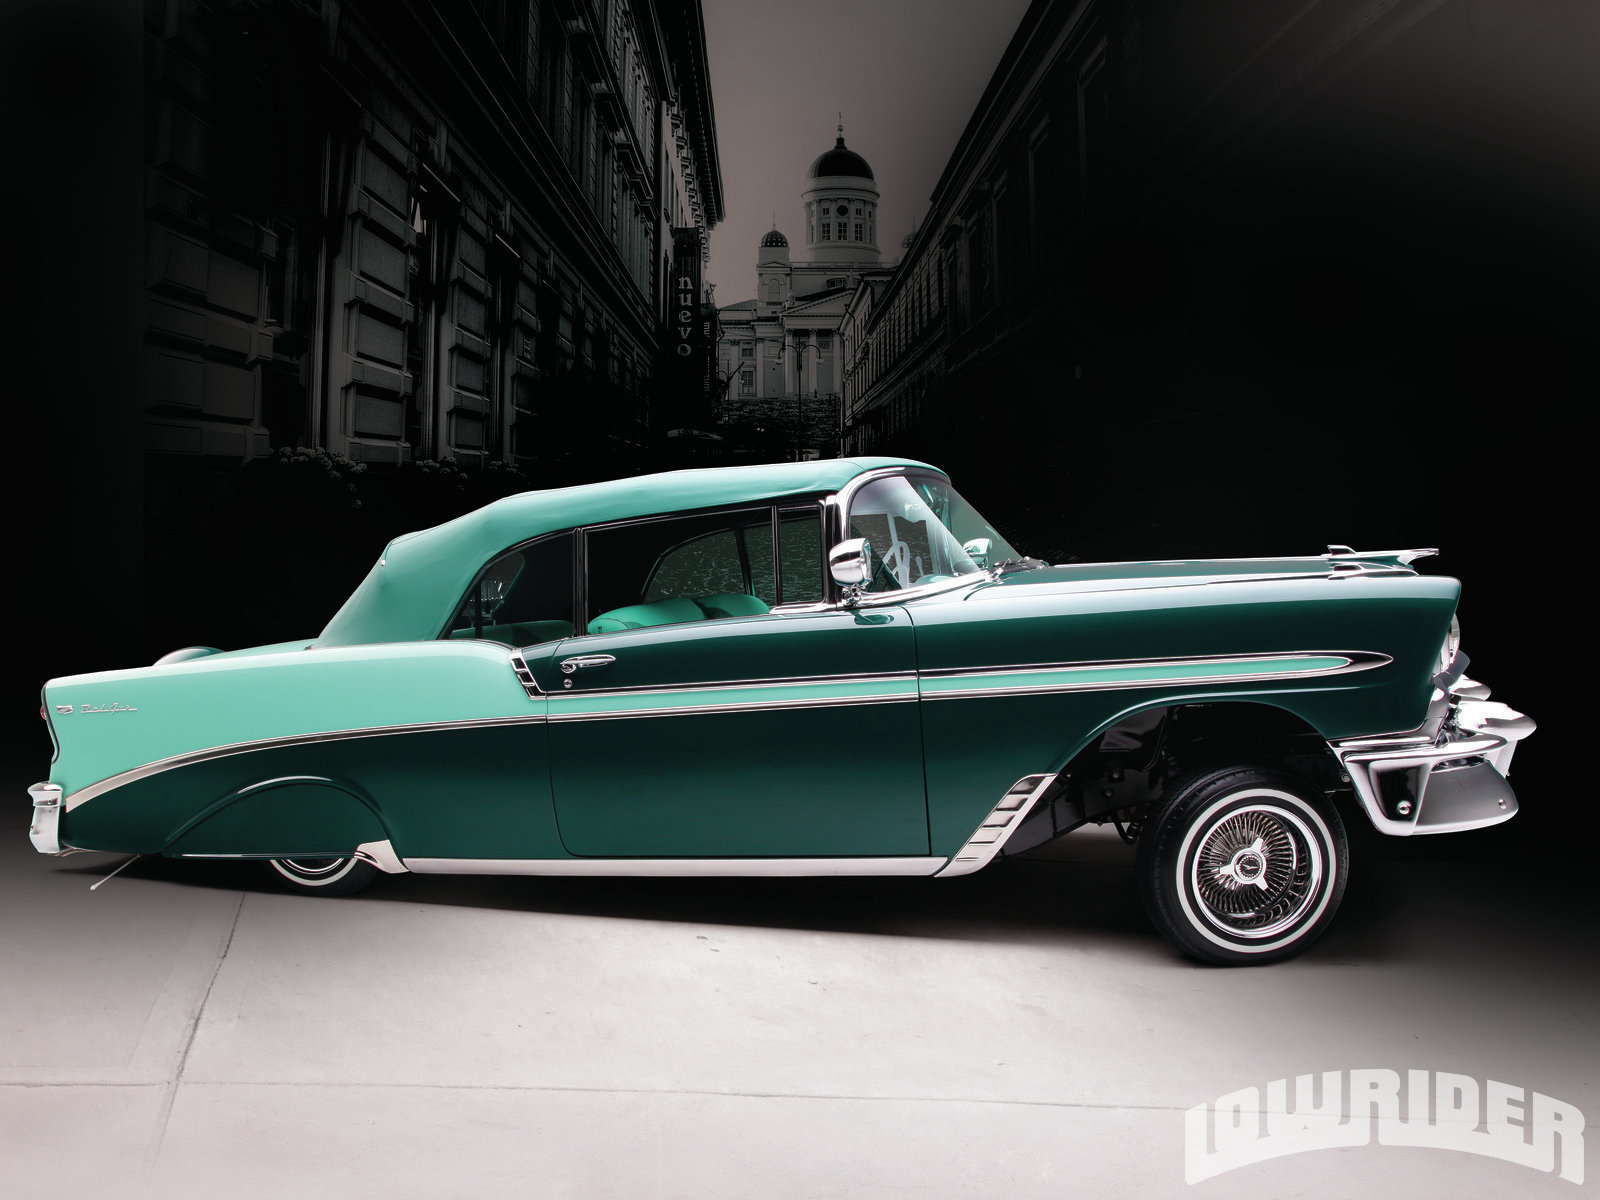 Cars For Sale Los Angeles Ca >> 1956 Chevy Bel Air Convertible - Lowrider Magazine